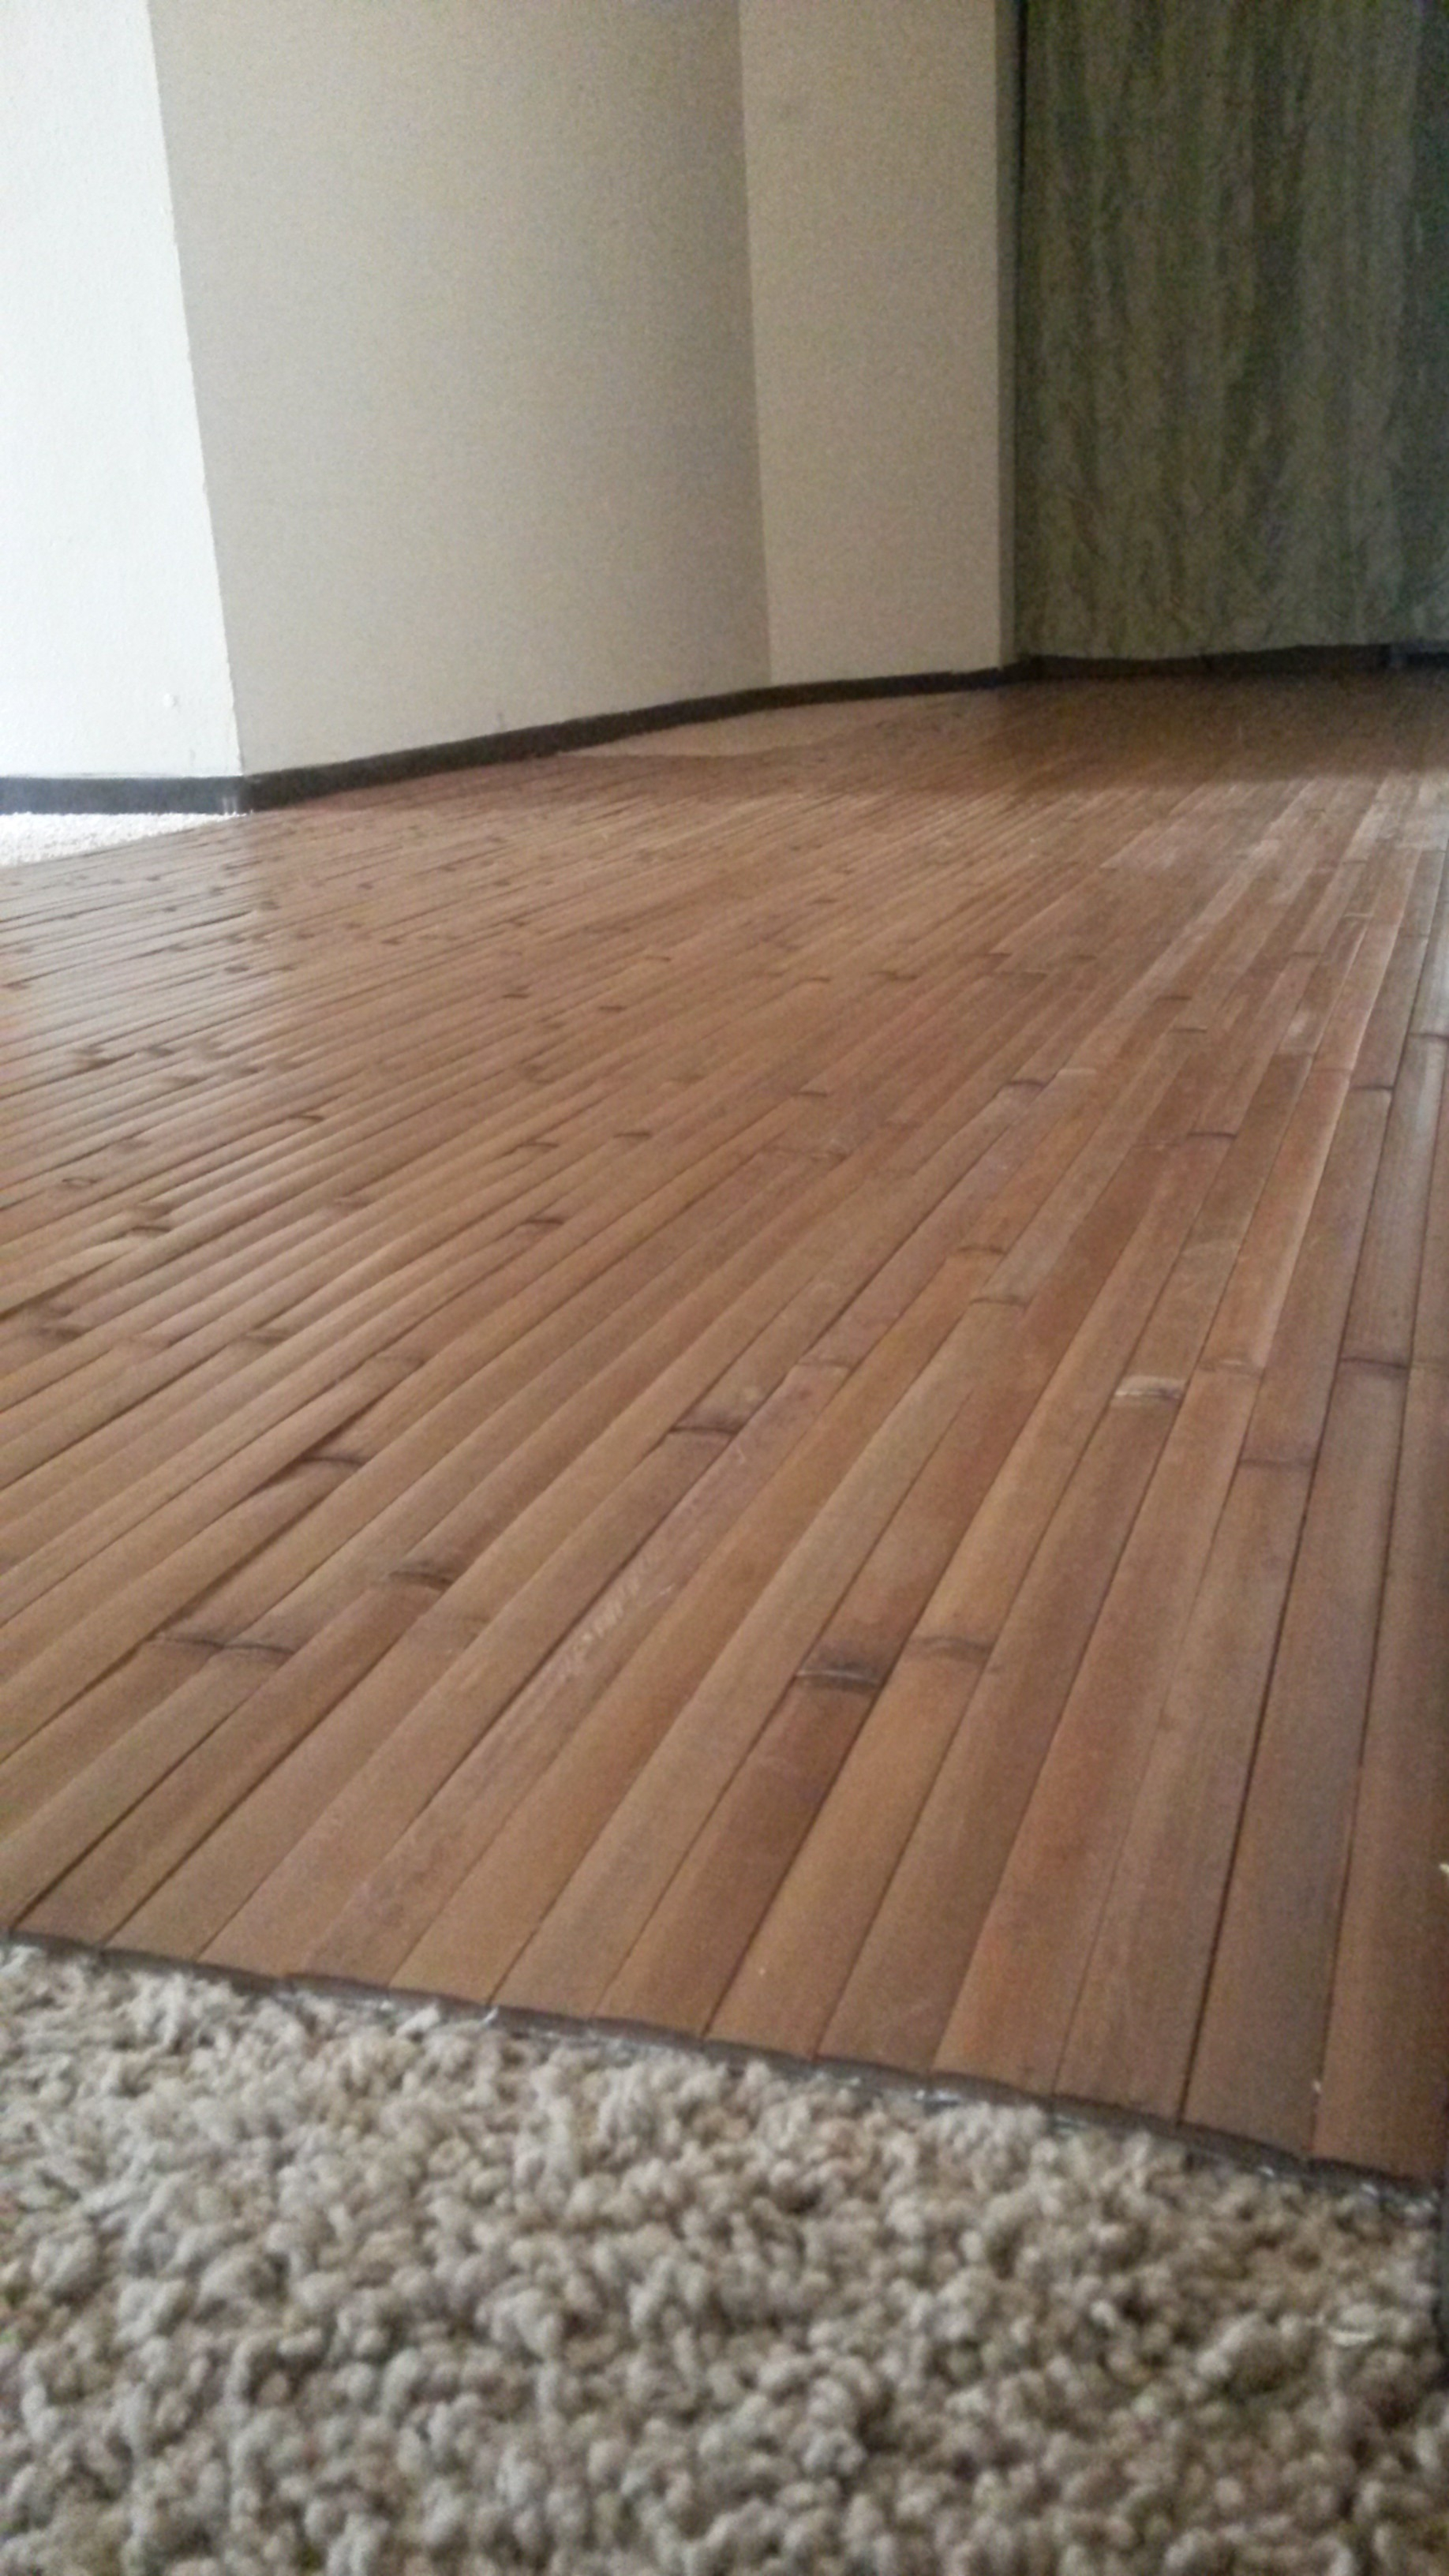 Temporary Wood Flooring Over Tile